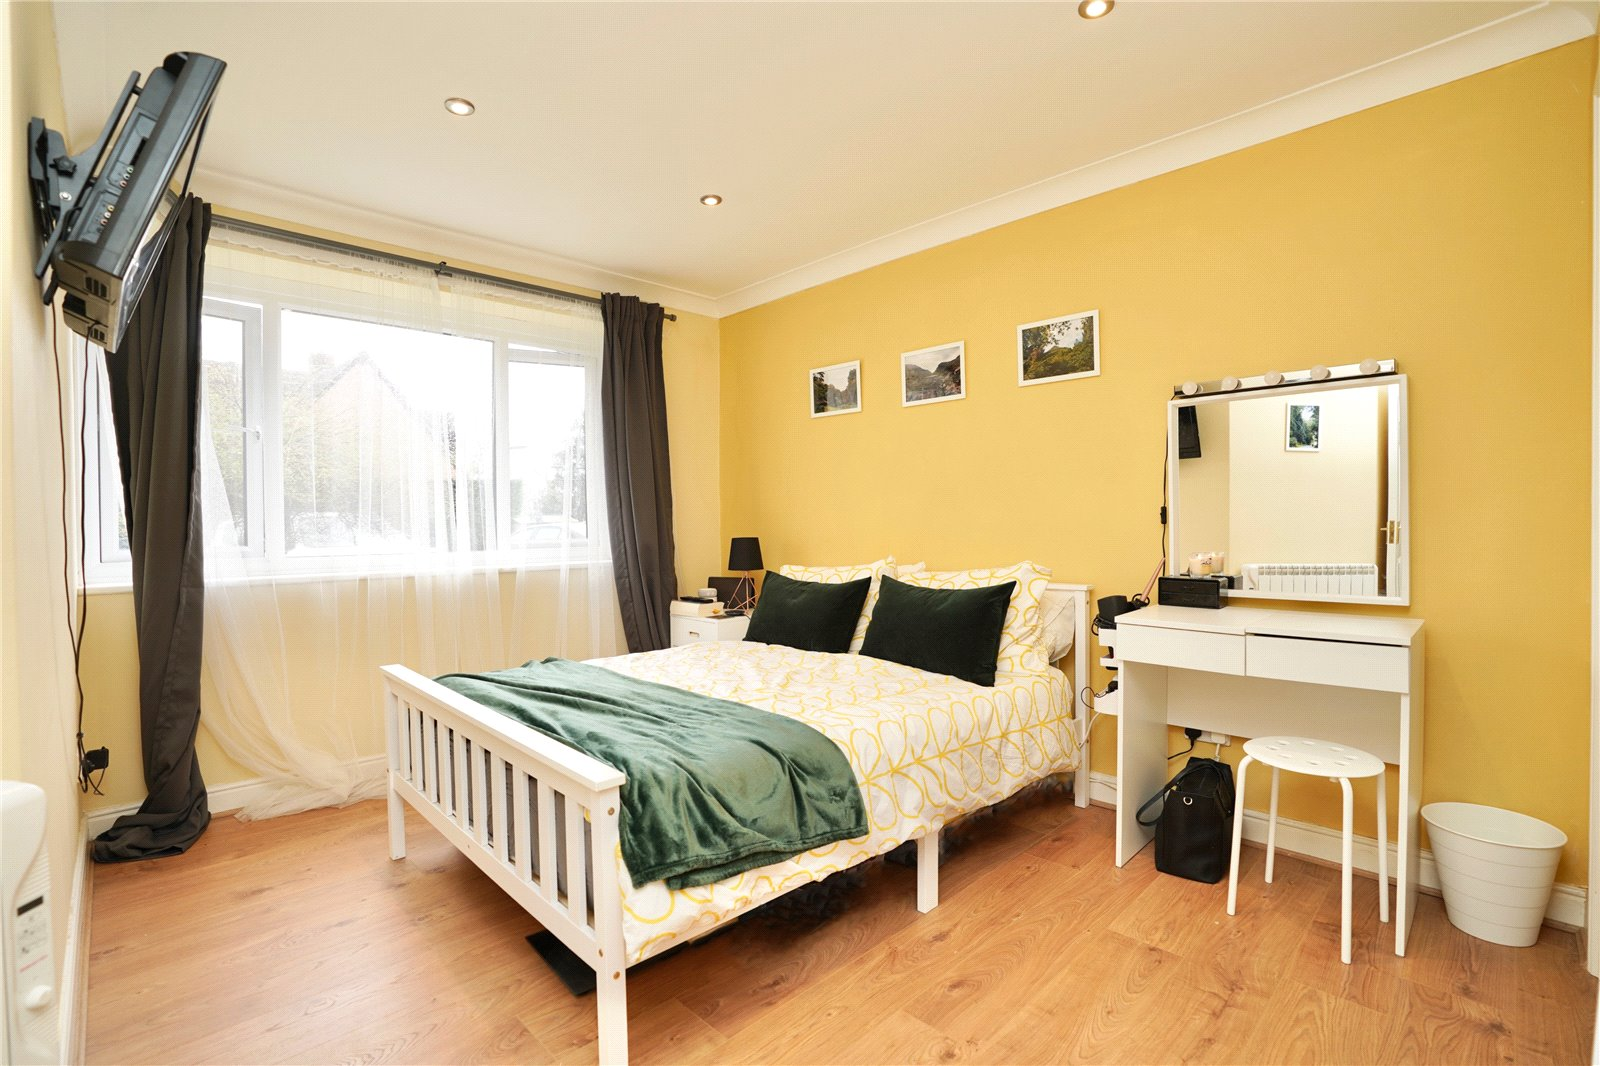 2 bed apartment for sale in Earith, PE28 3PP 6